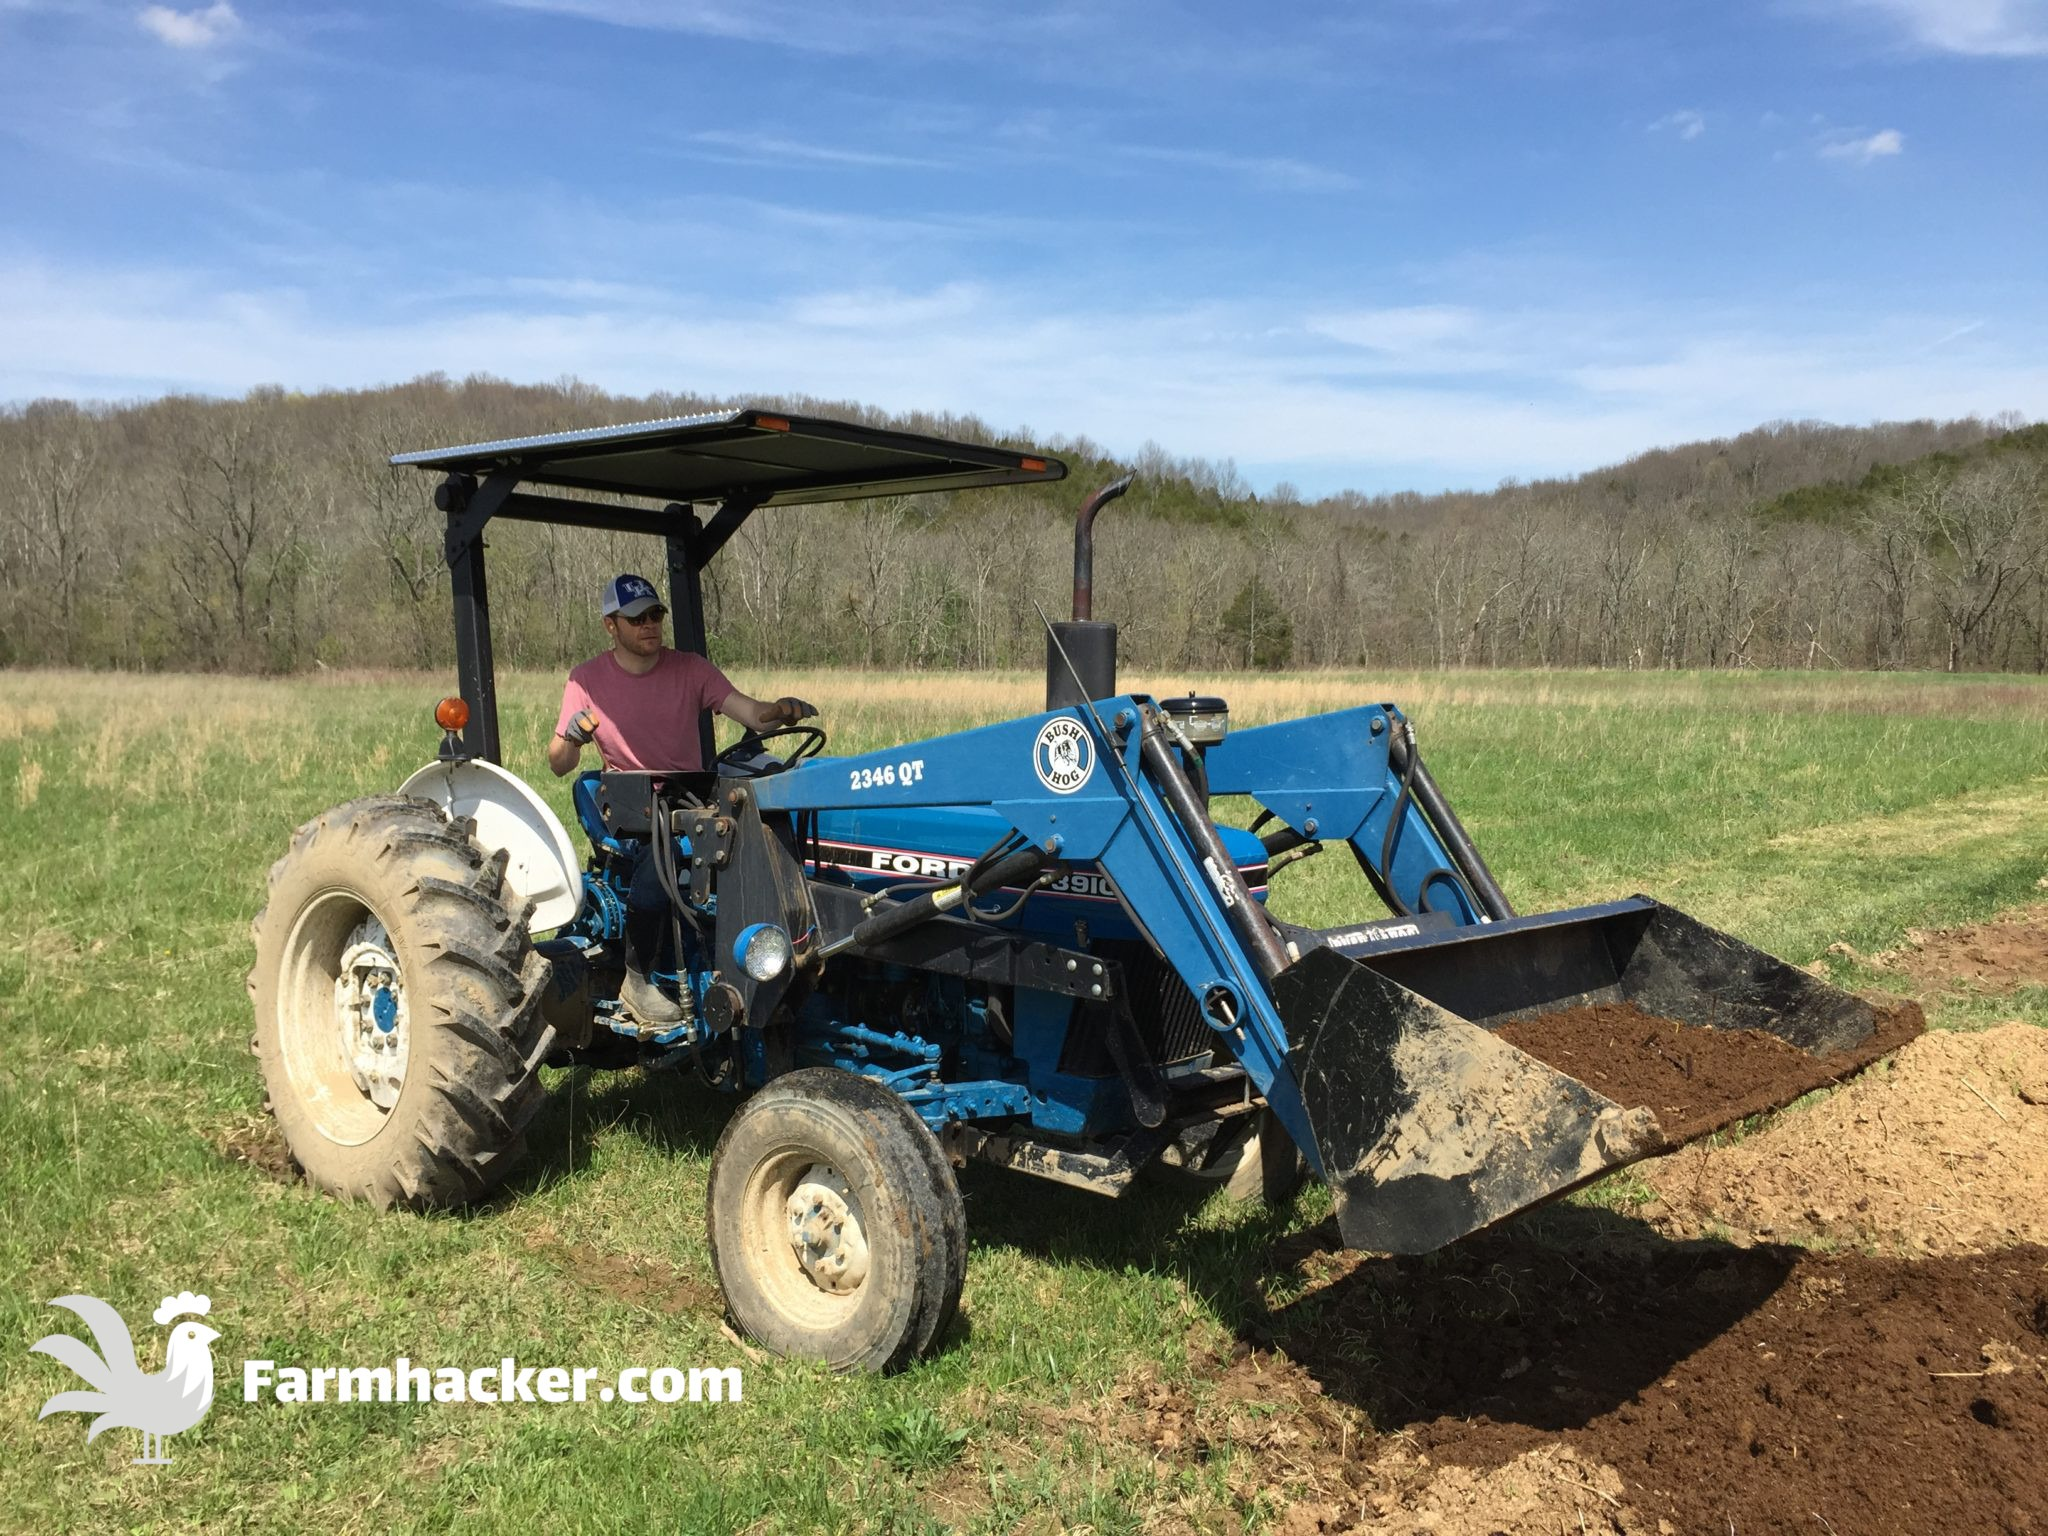 Casey on a Tractor - Essential Farming Tools